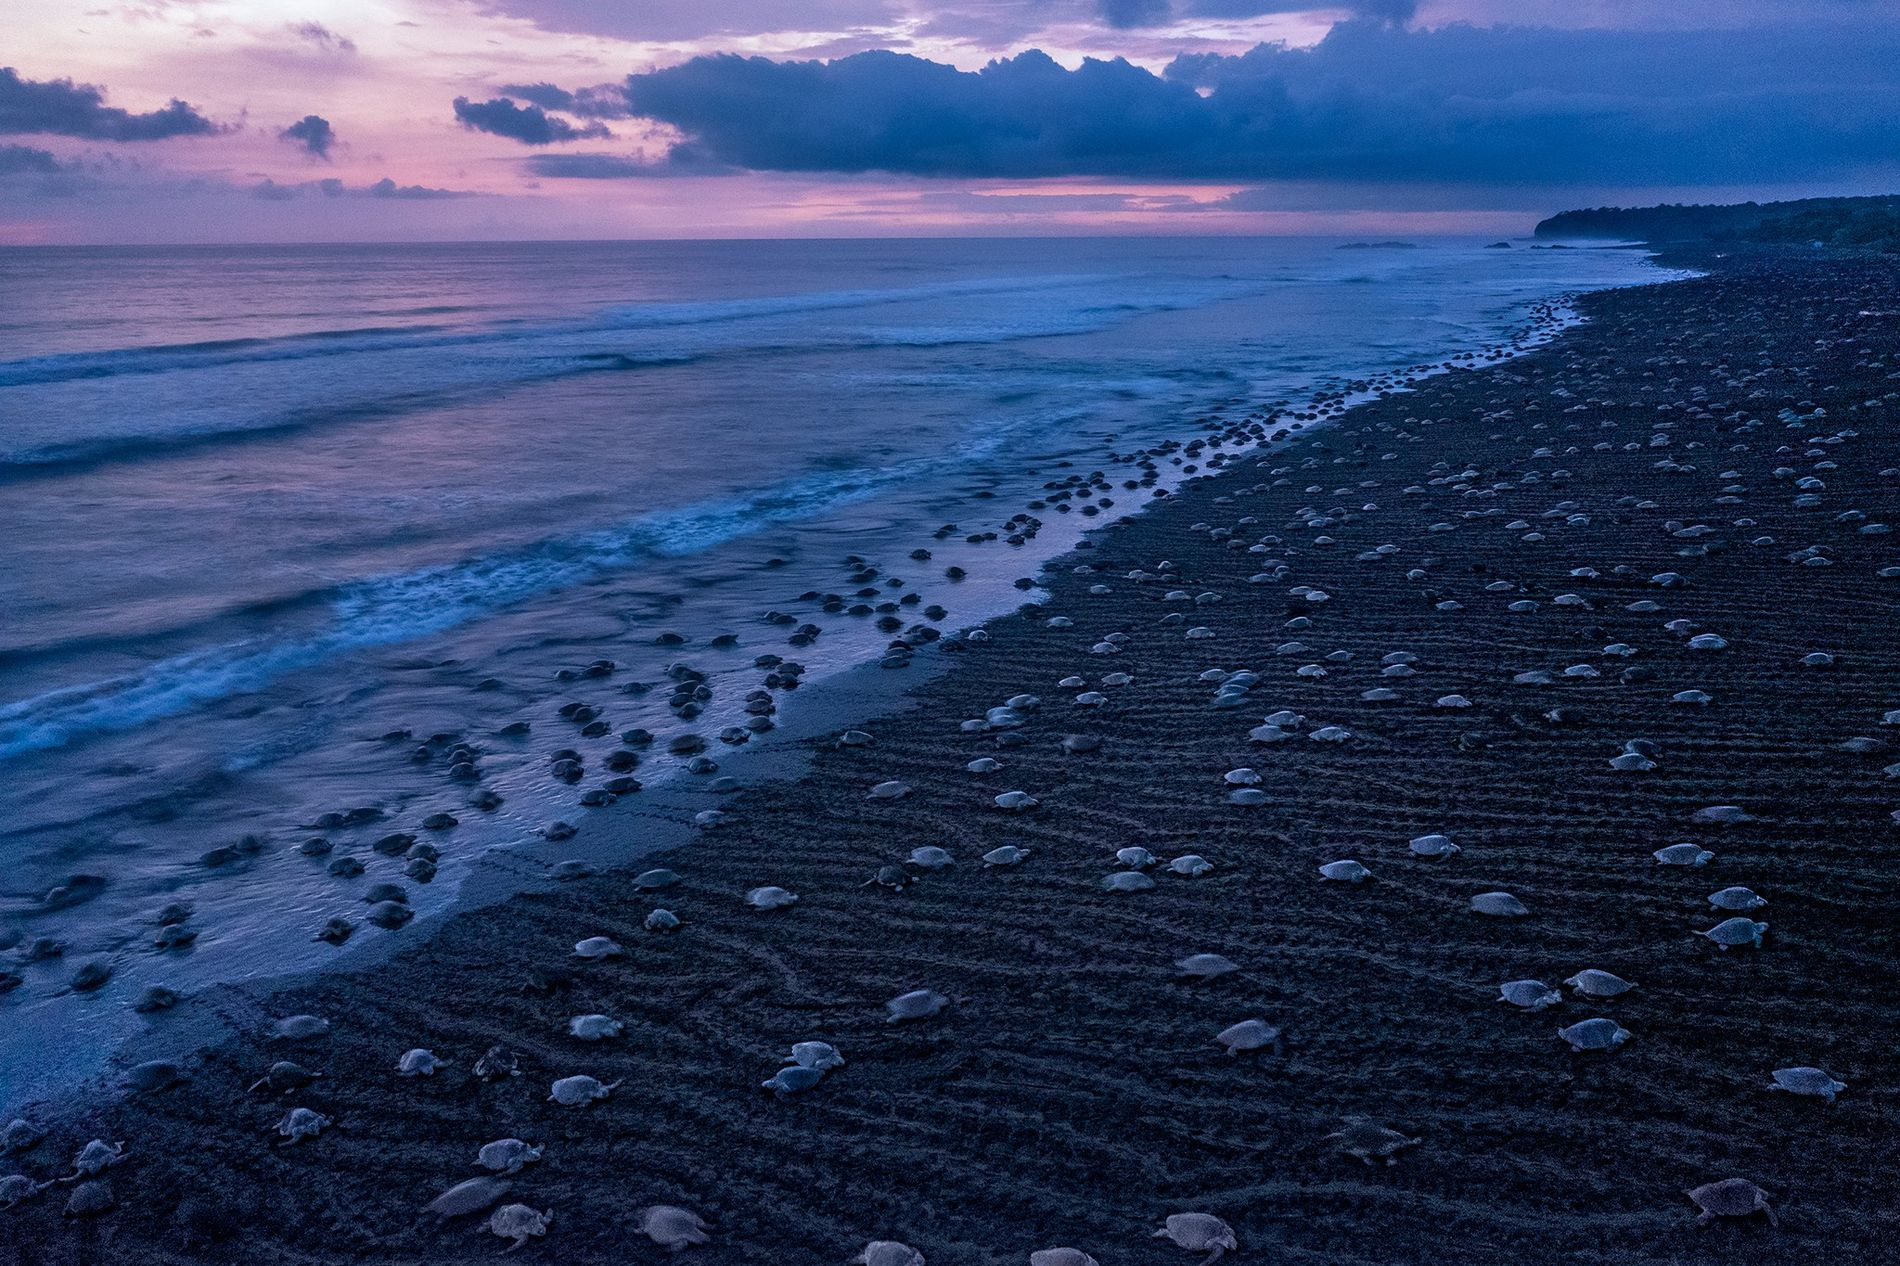 Once or twice a month during Costa Rica's rainy season, female olive ridley sea turtles come ...